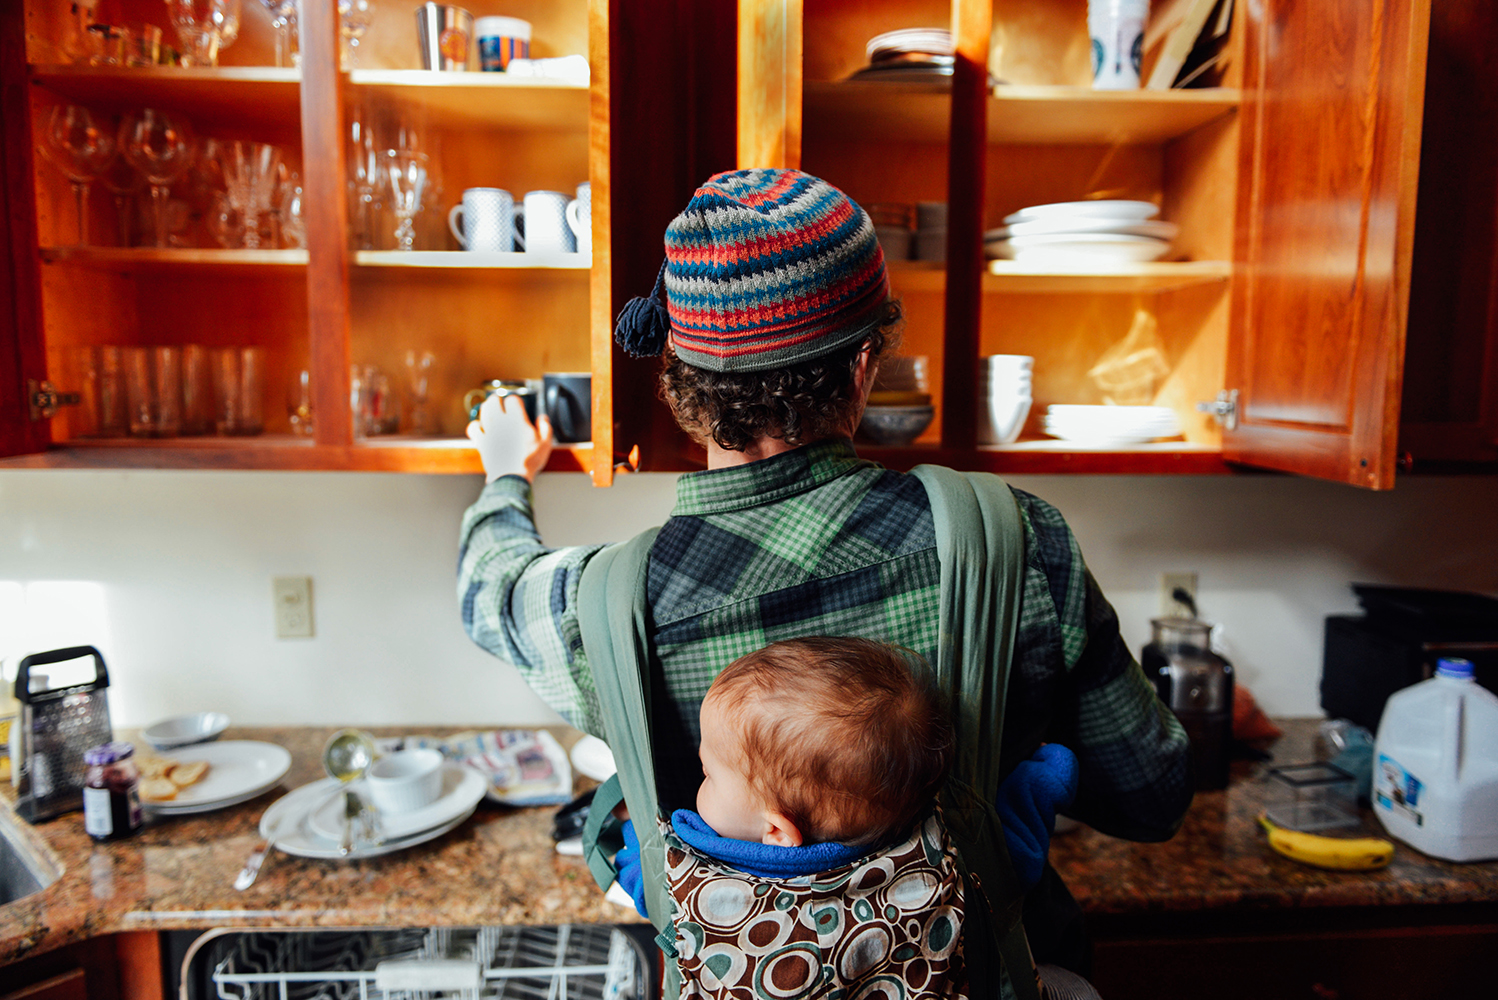 Stay-at-home dad - In February 2014, I followed Will Scherer, who became a stay-at-home dad after moving to Missouri for his wife's job, while he took care of his two young children.